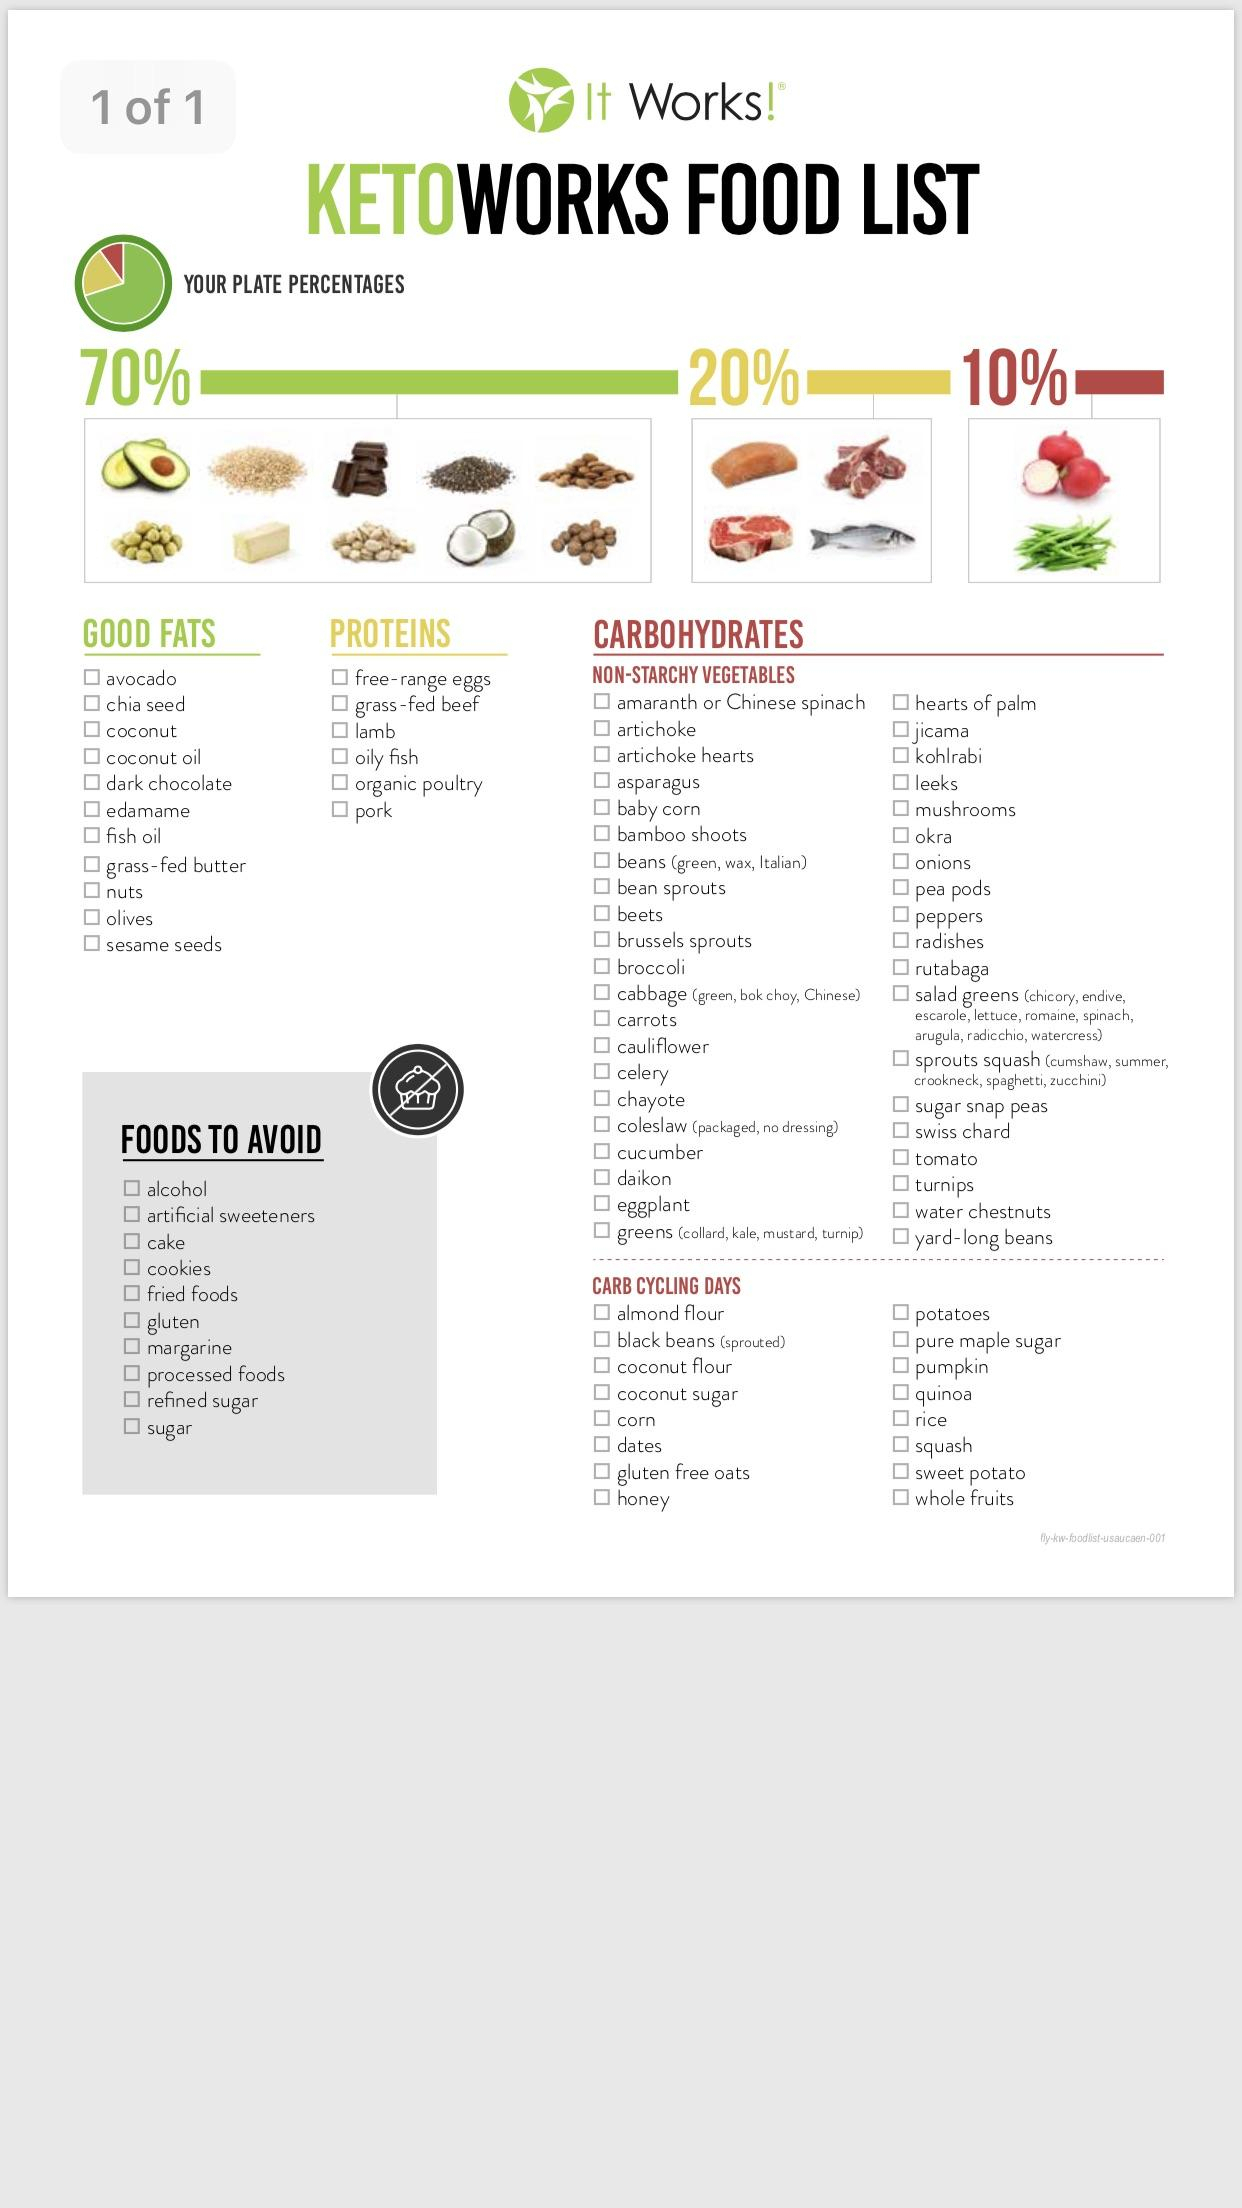 Keto Spreadsheet Reddit Throughout Keto Food List : Ketodiet